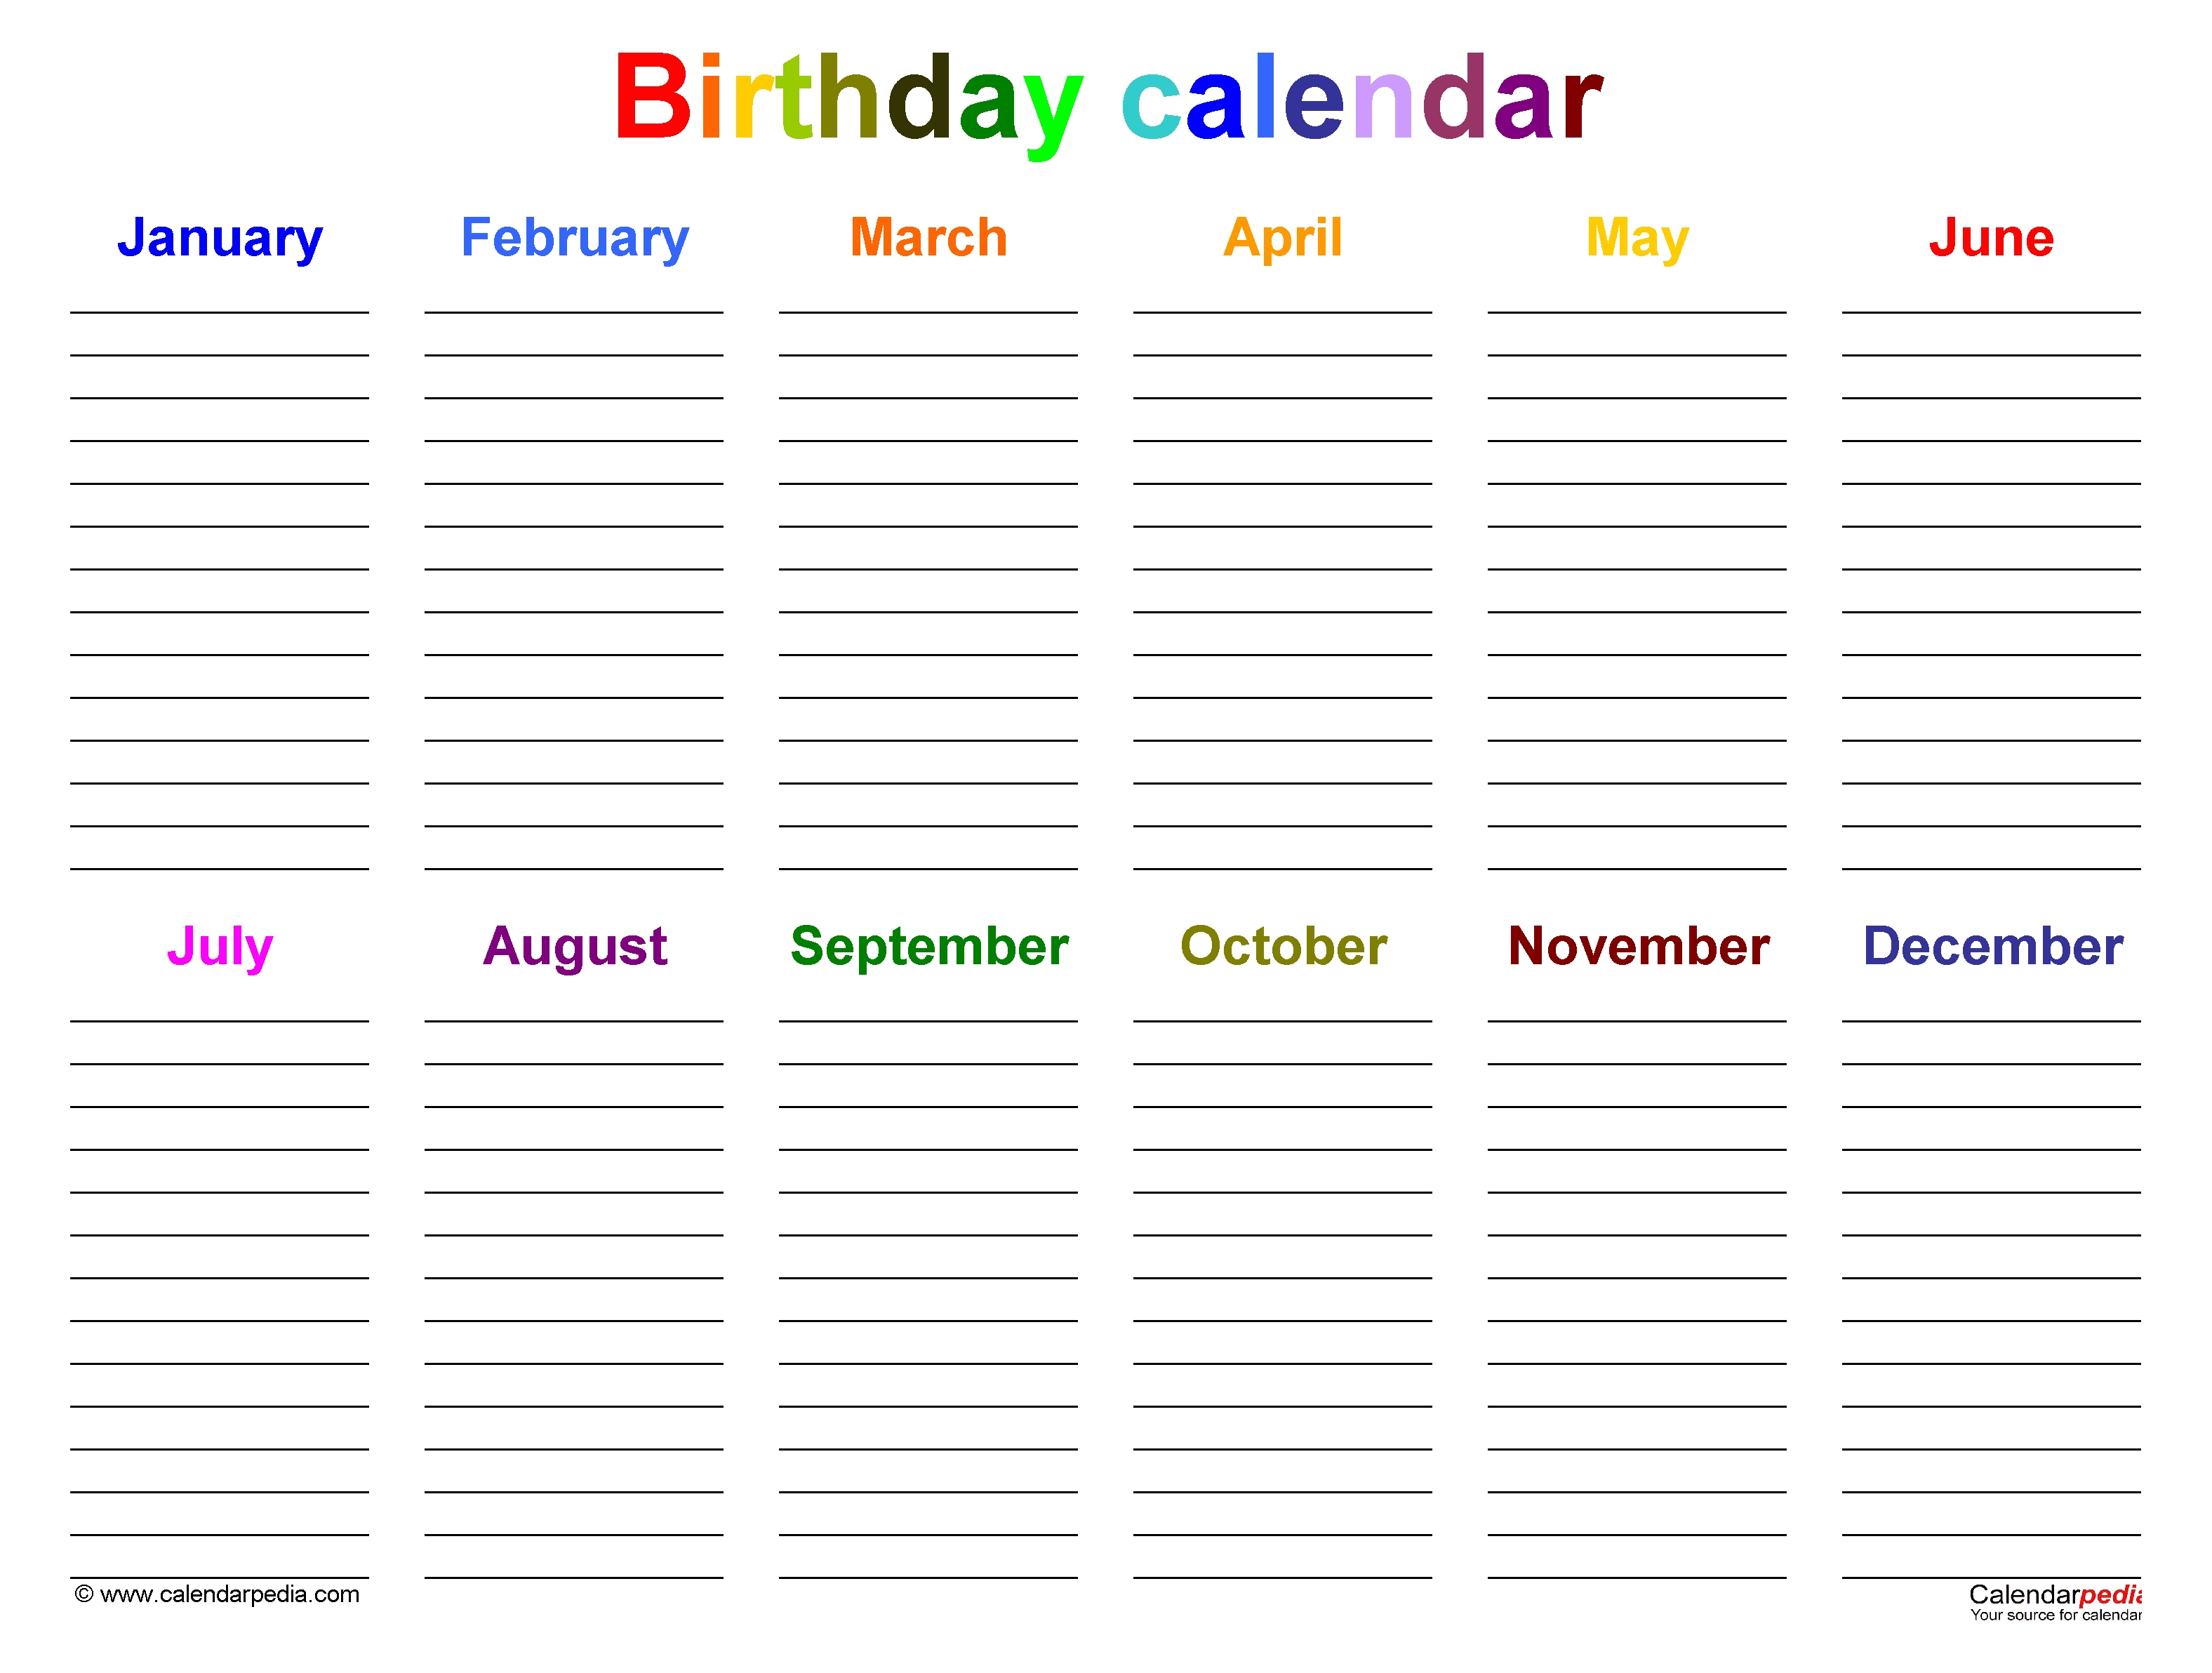 Birthday Calendars - Free Printable Pdf Templates